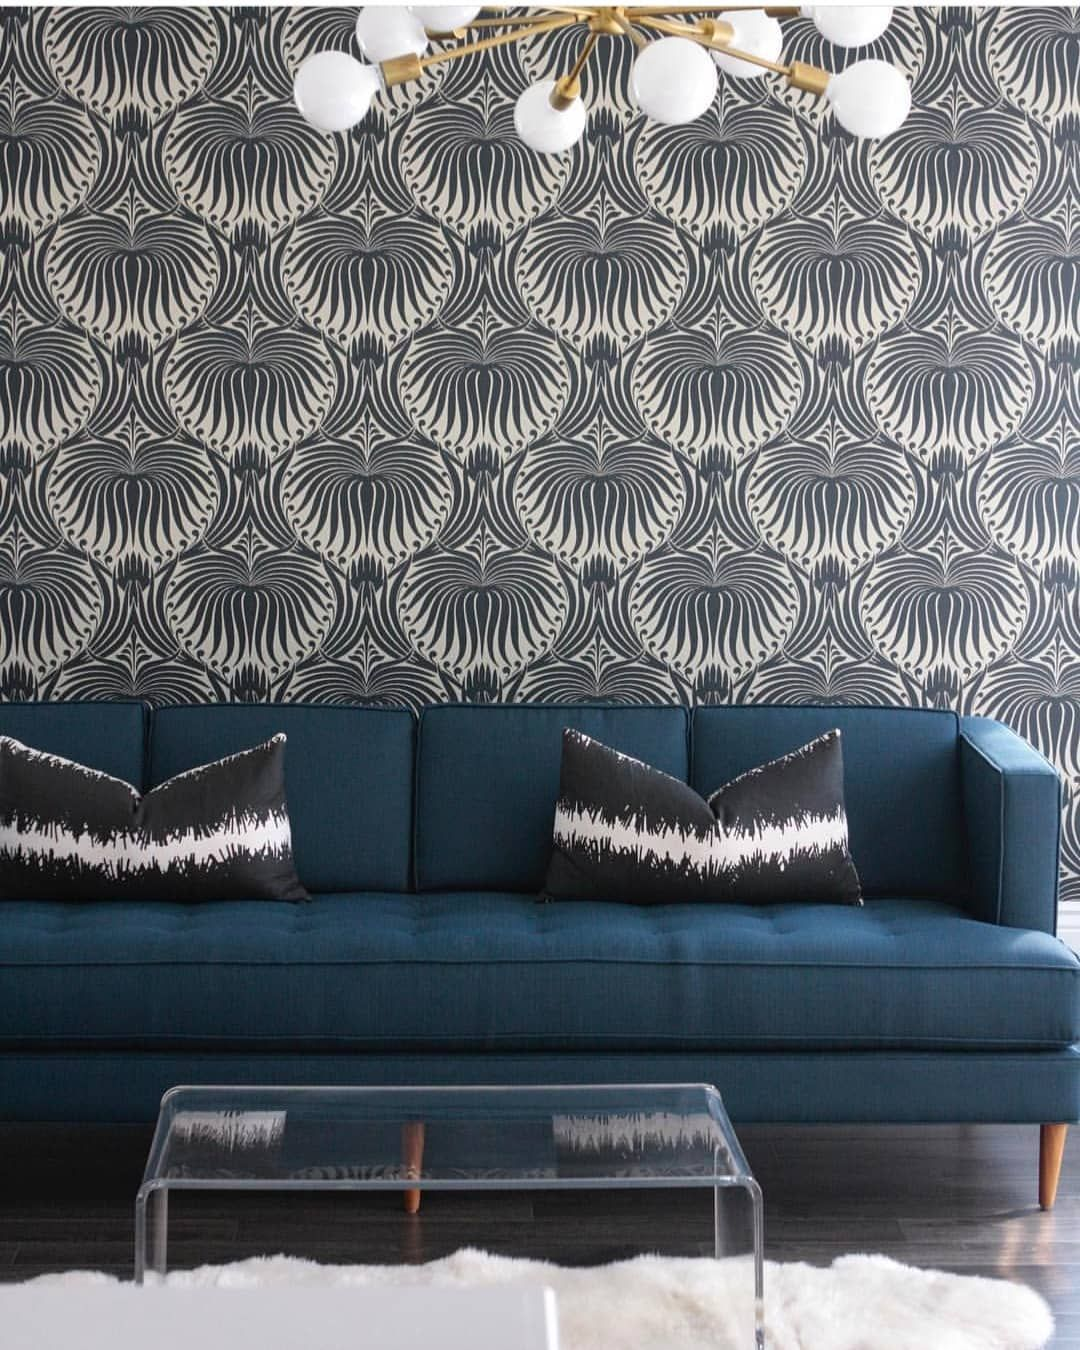 Beautiful Monochrome Wallpaper With Statement Lighting And A